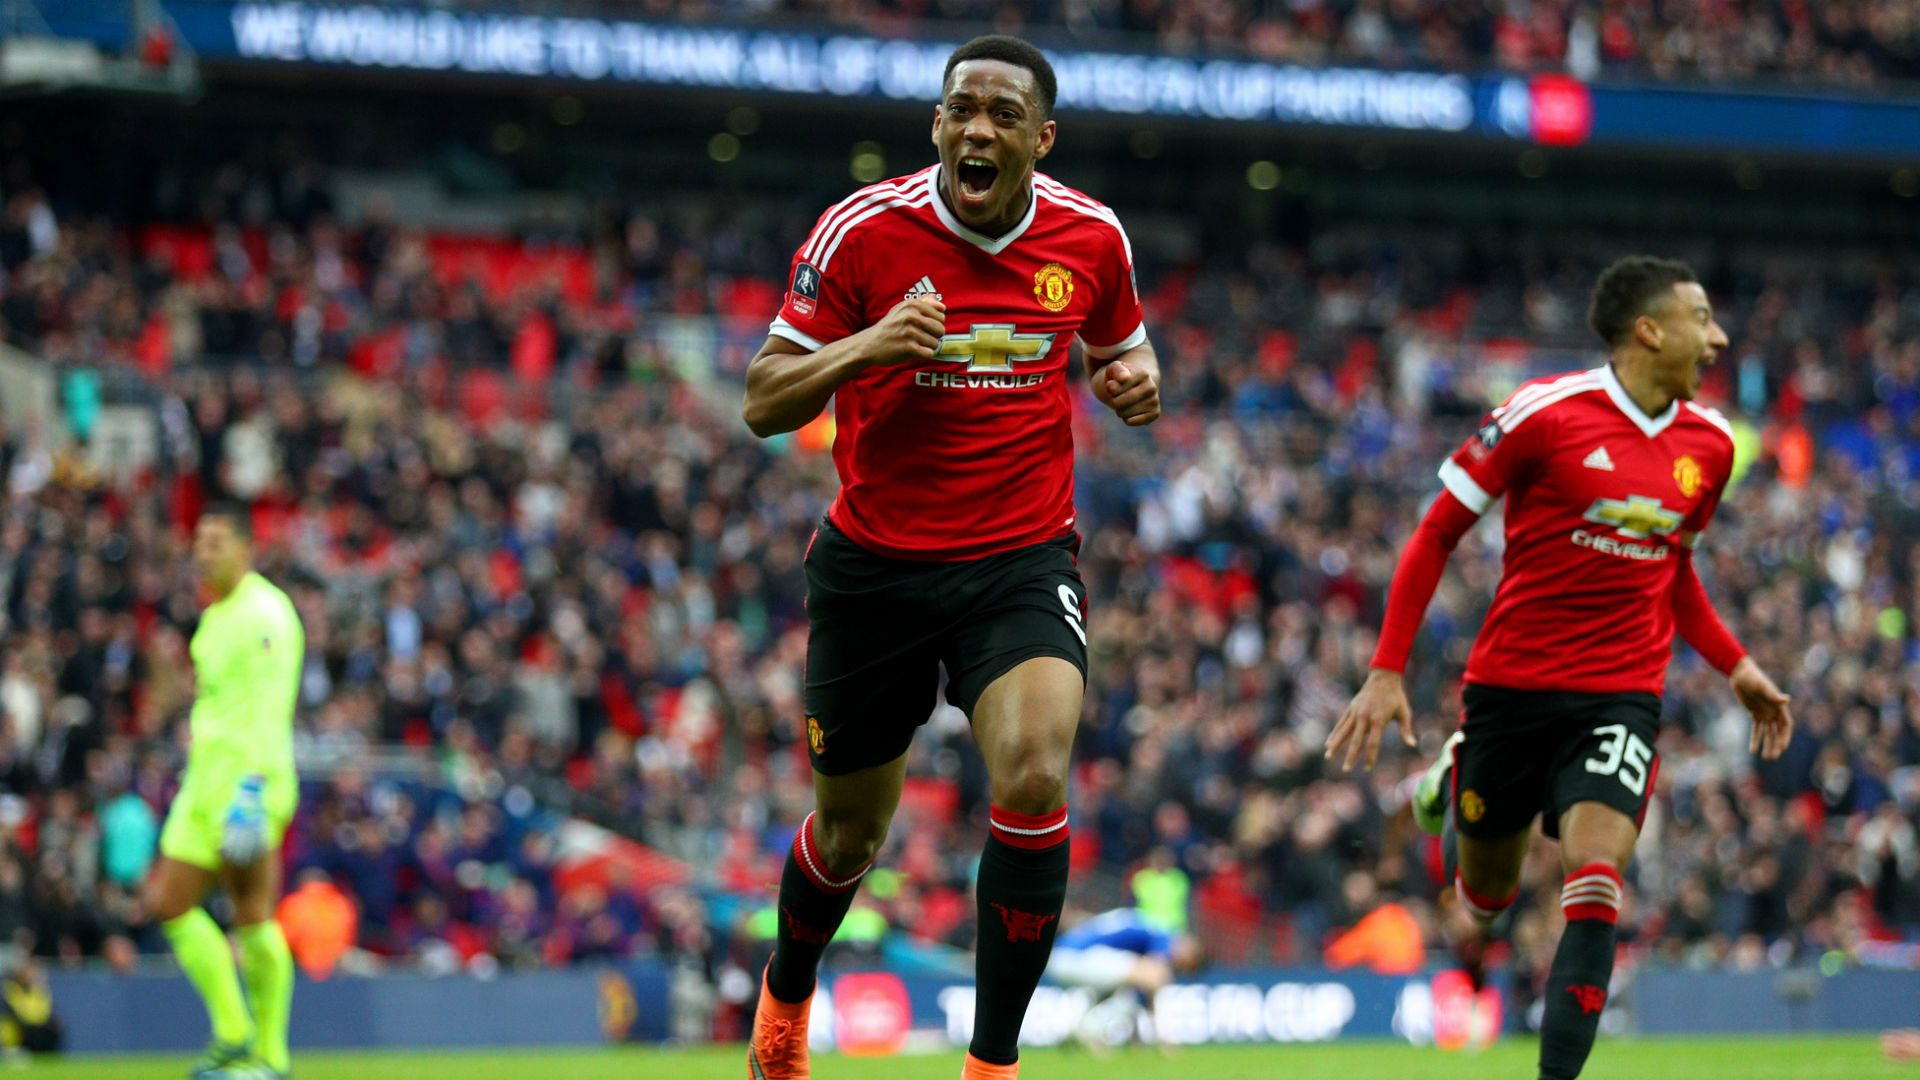 Video: Everton vs Manchester United